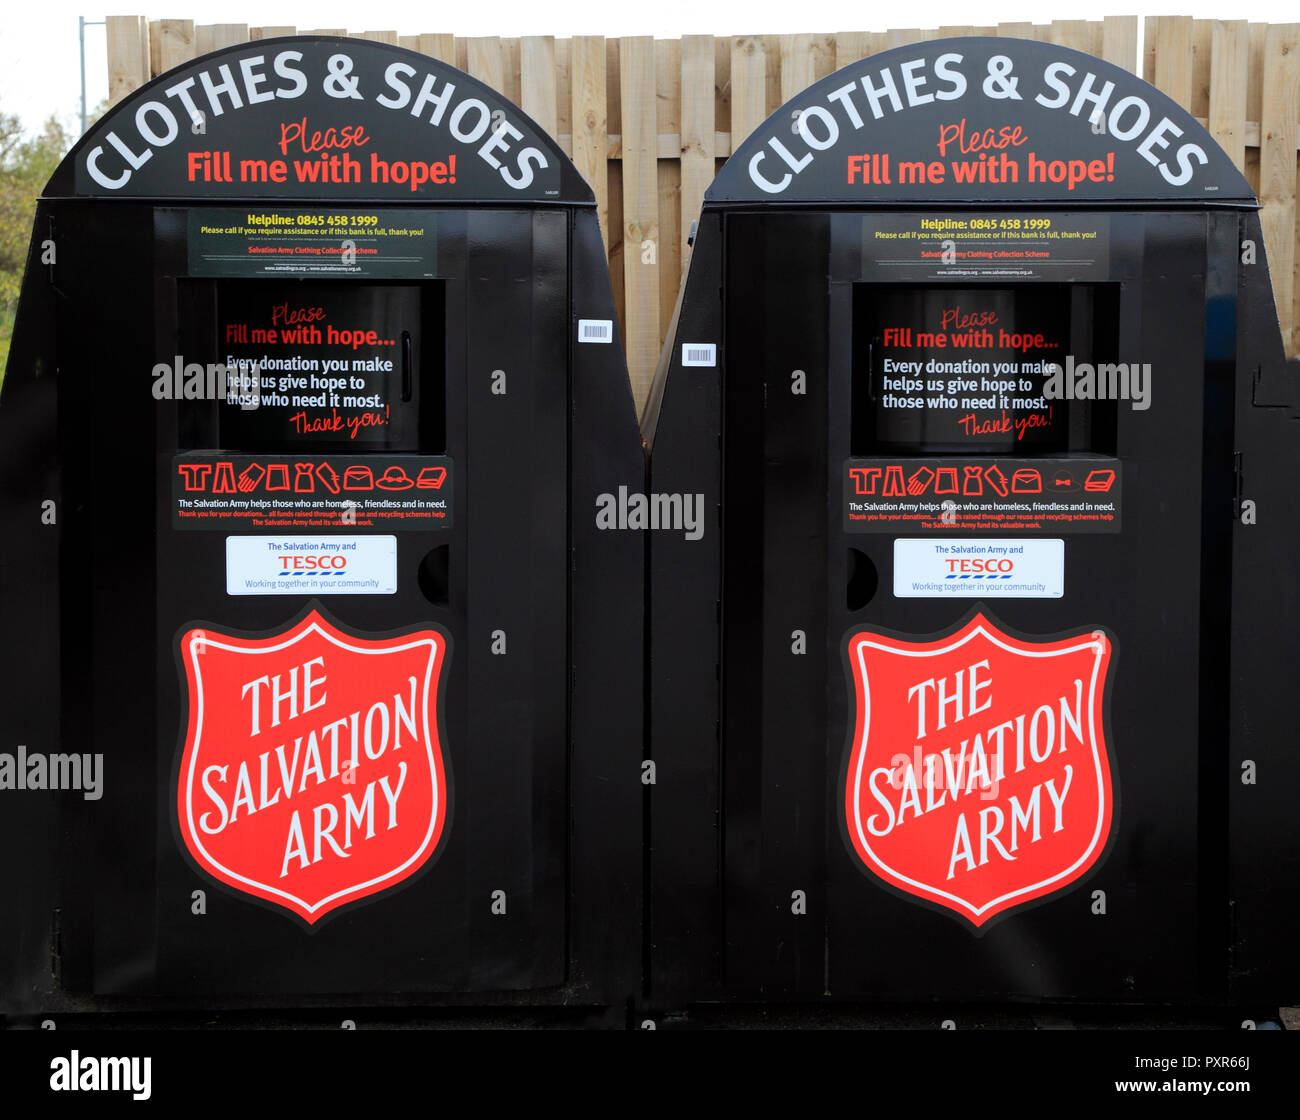 The Salvation Army, collection bins, Clothes and Shoes, charity, receptacle, with Tesco - Stock Image